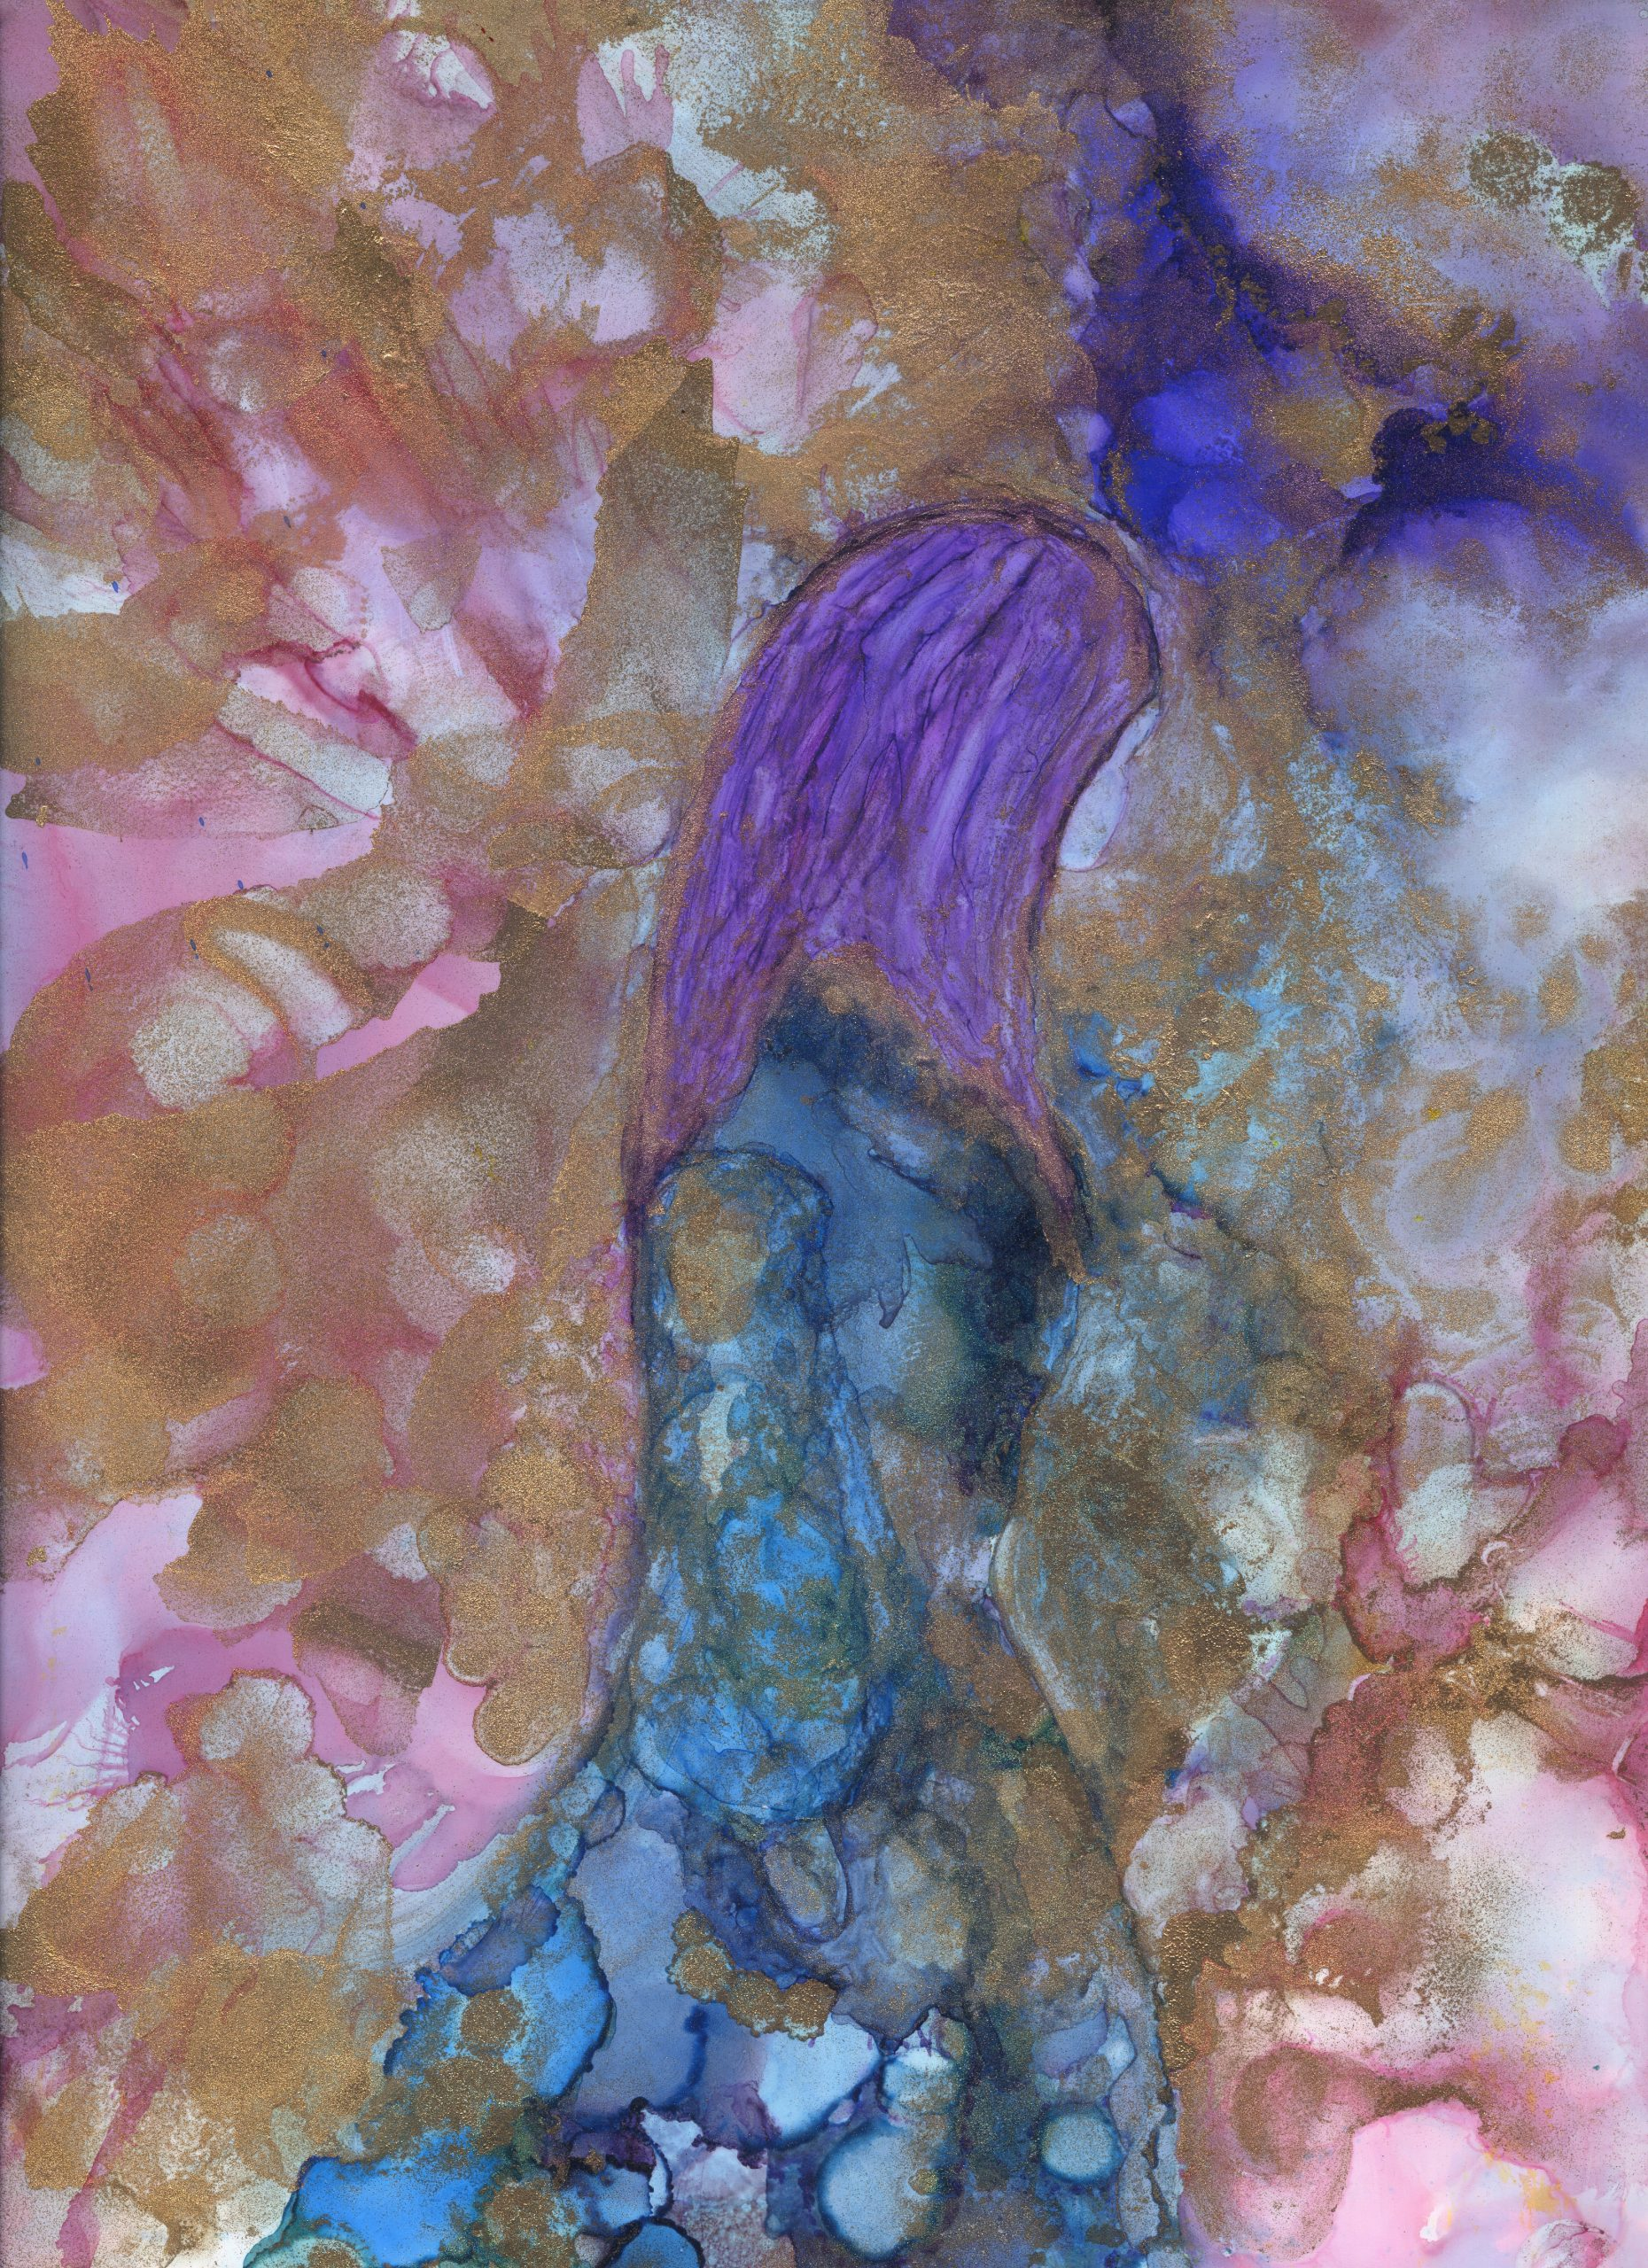 Walking By - Alcohol ink - 9 X 12 - $140